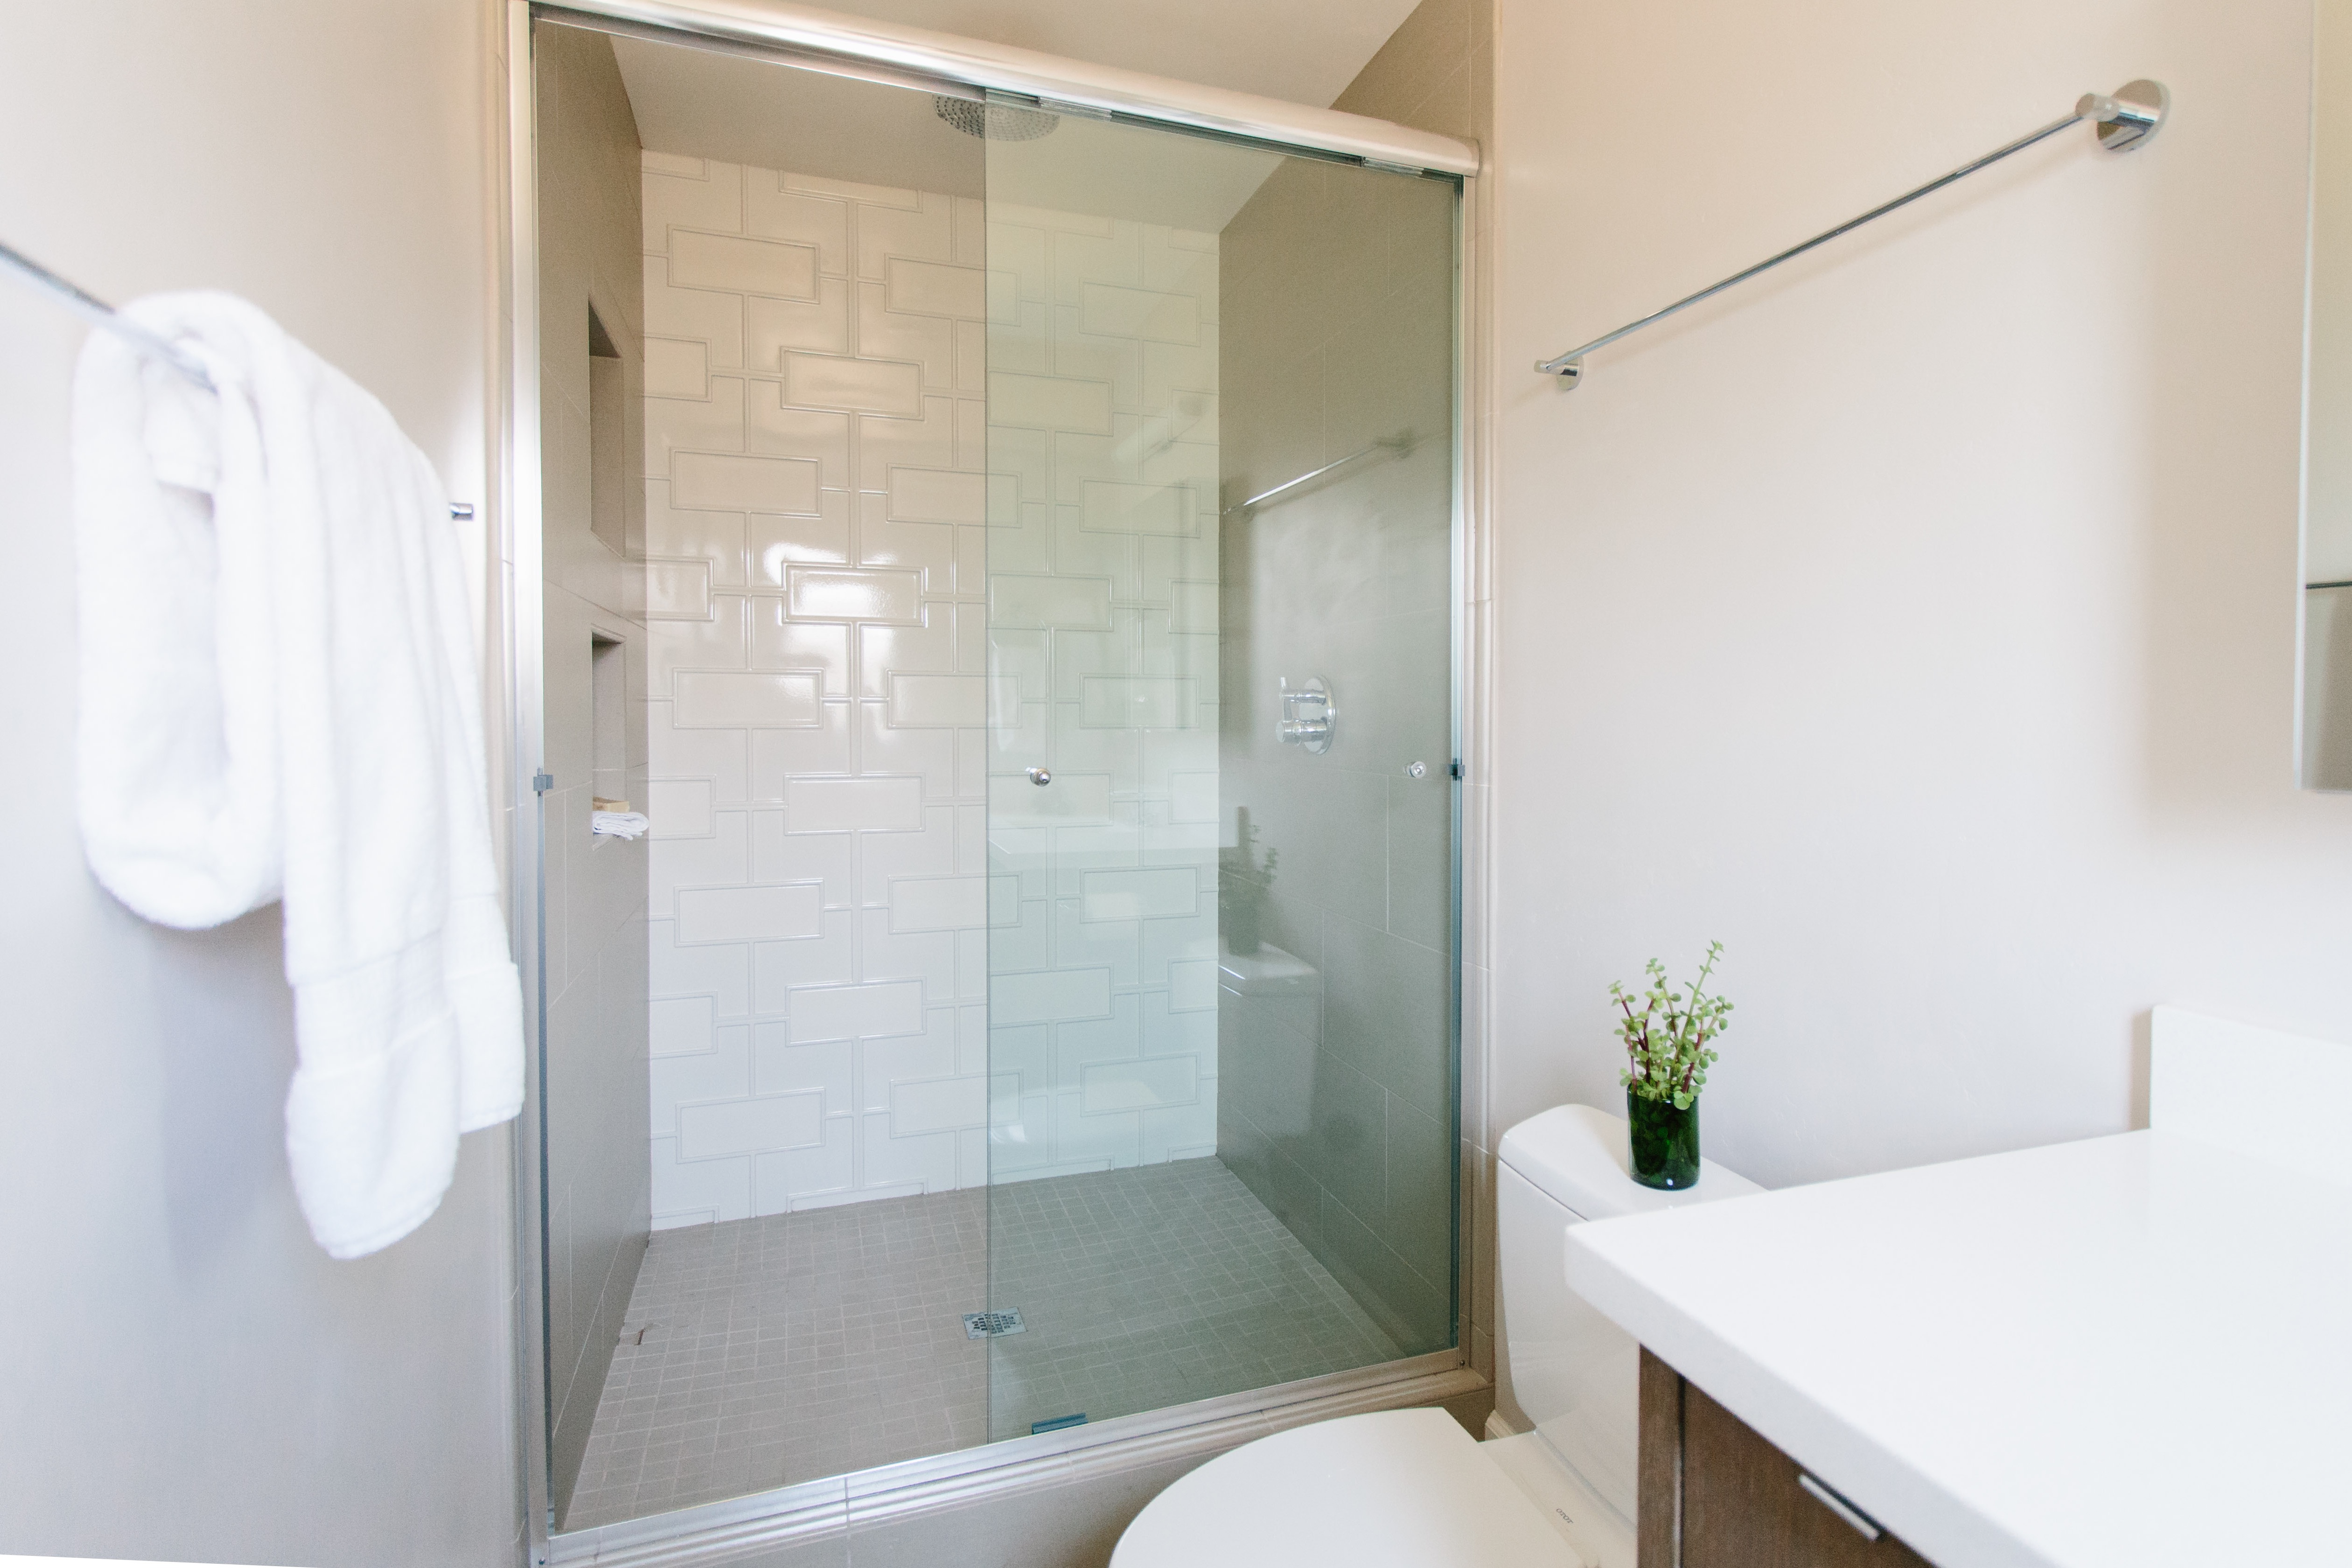 Contemporary Shower Stall With Modern White Tile Pattern (Image 4 of 22)